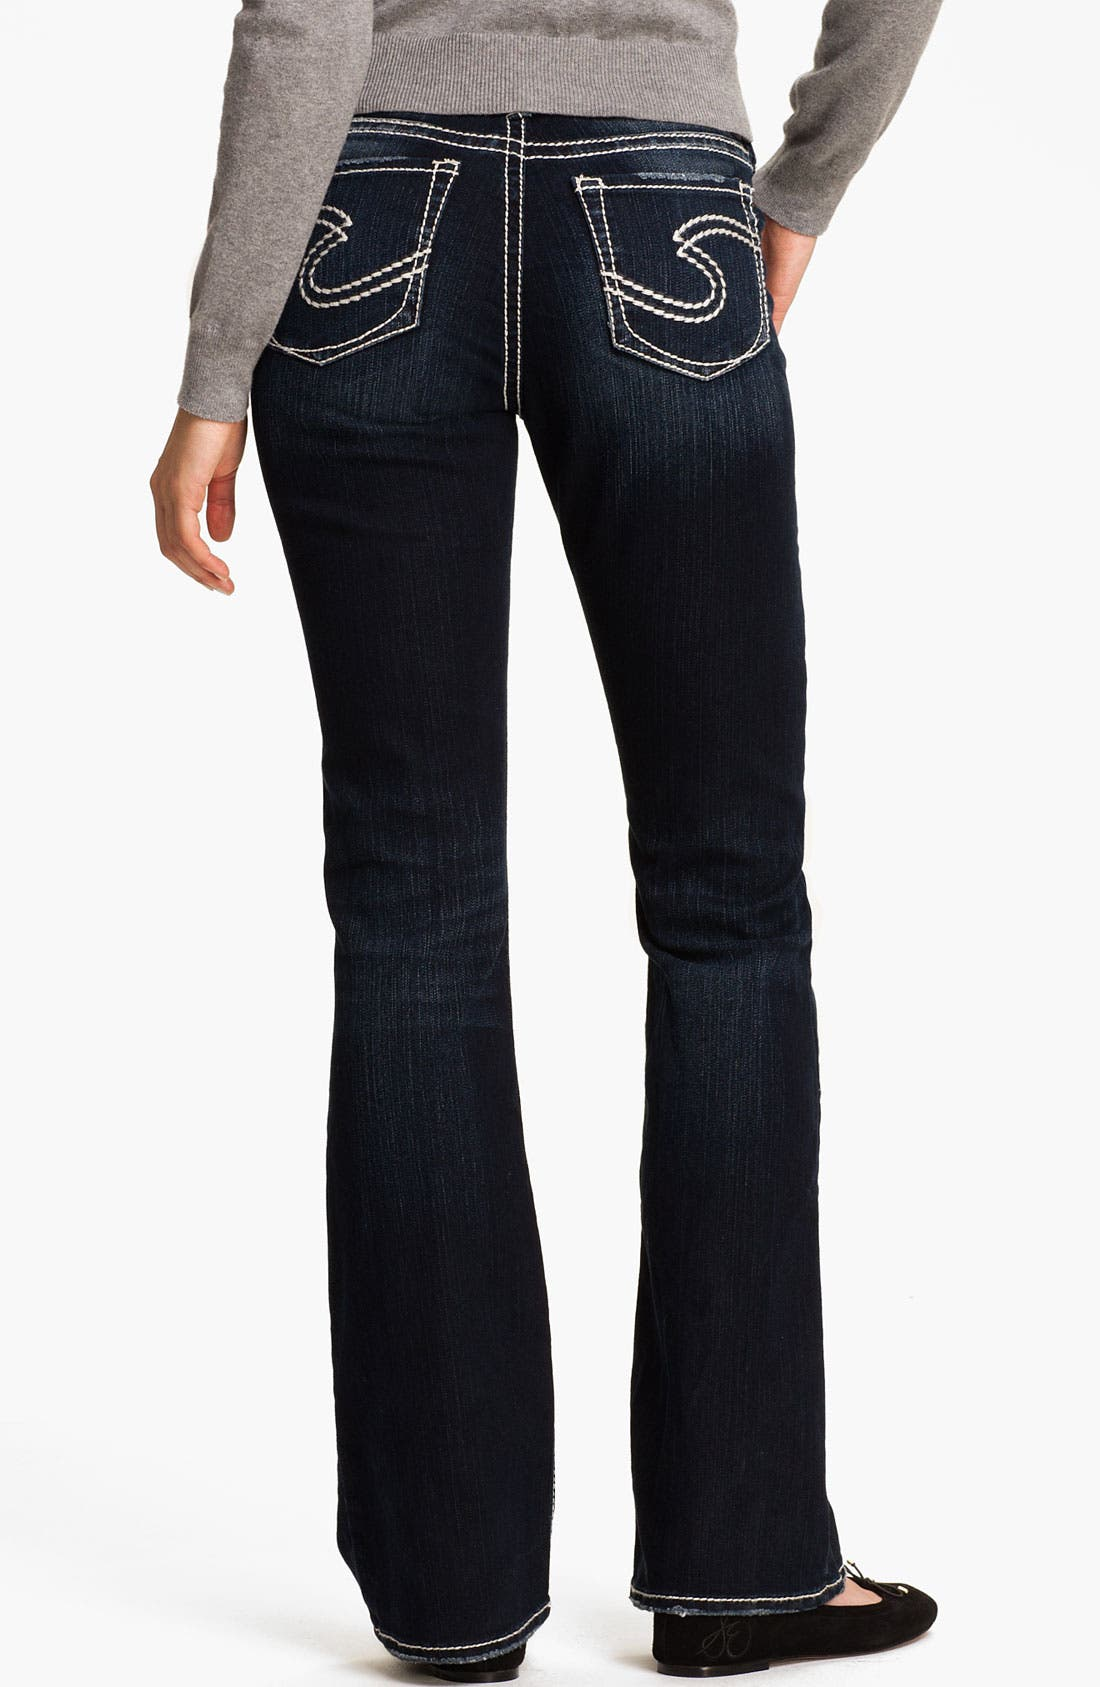 Main Image - Silver Jeans Co. 'Natsuki' Bootcut Jeans (Juniors)